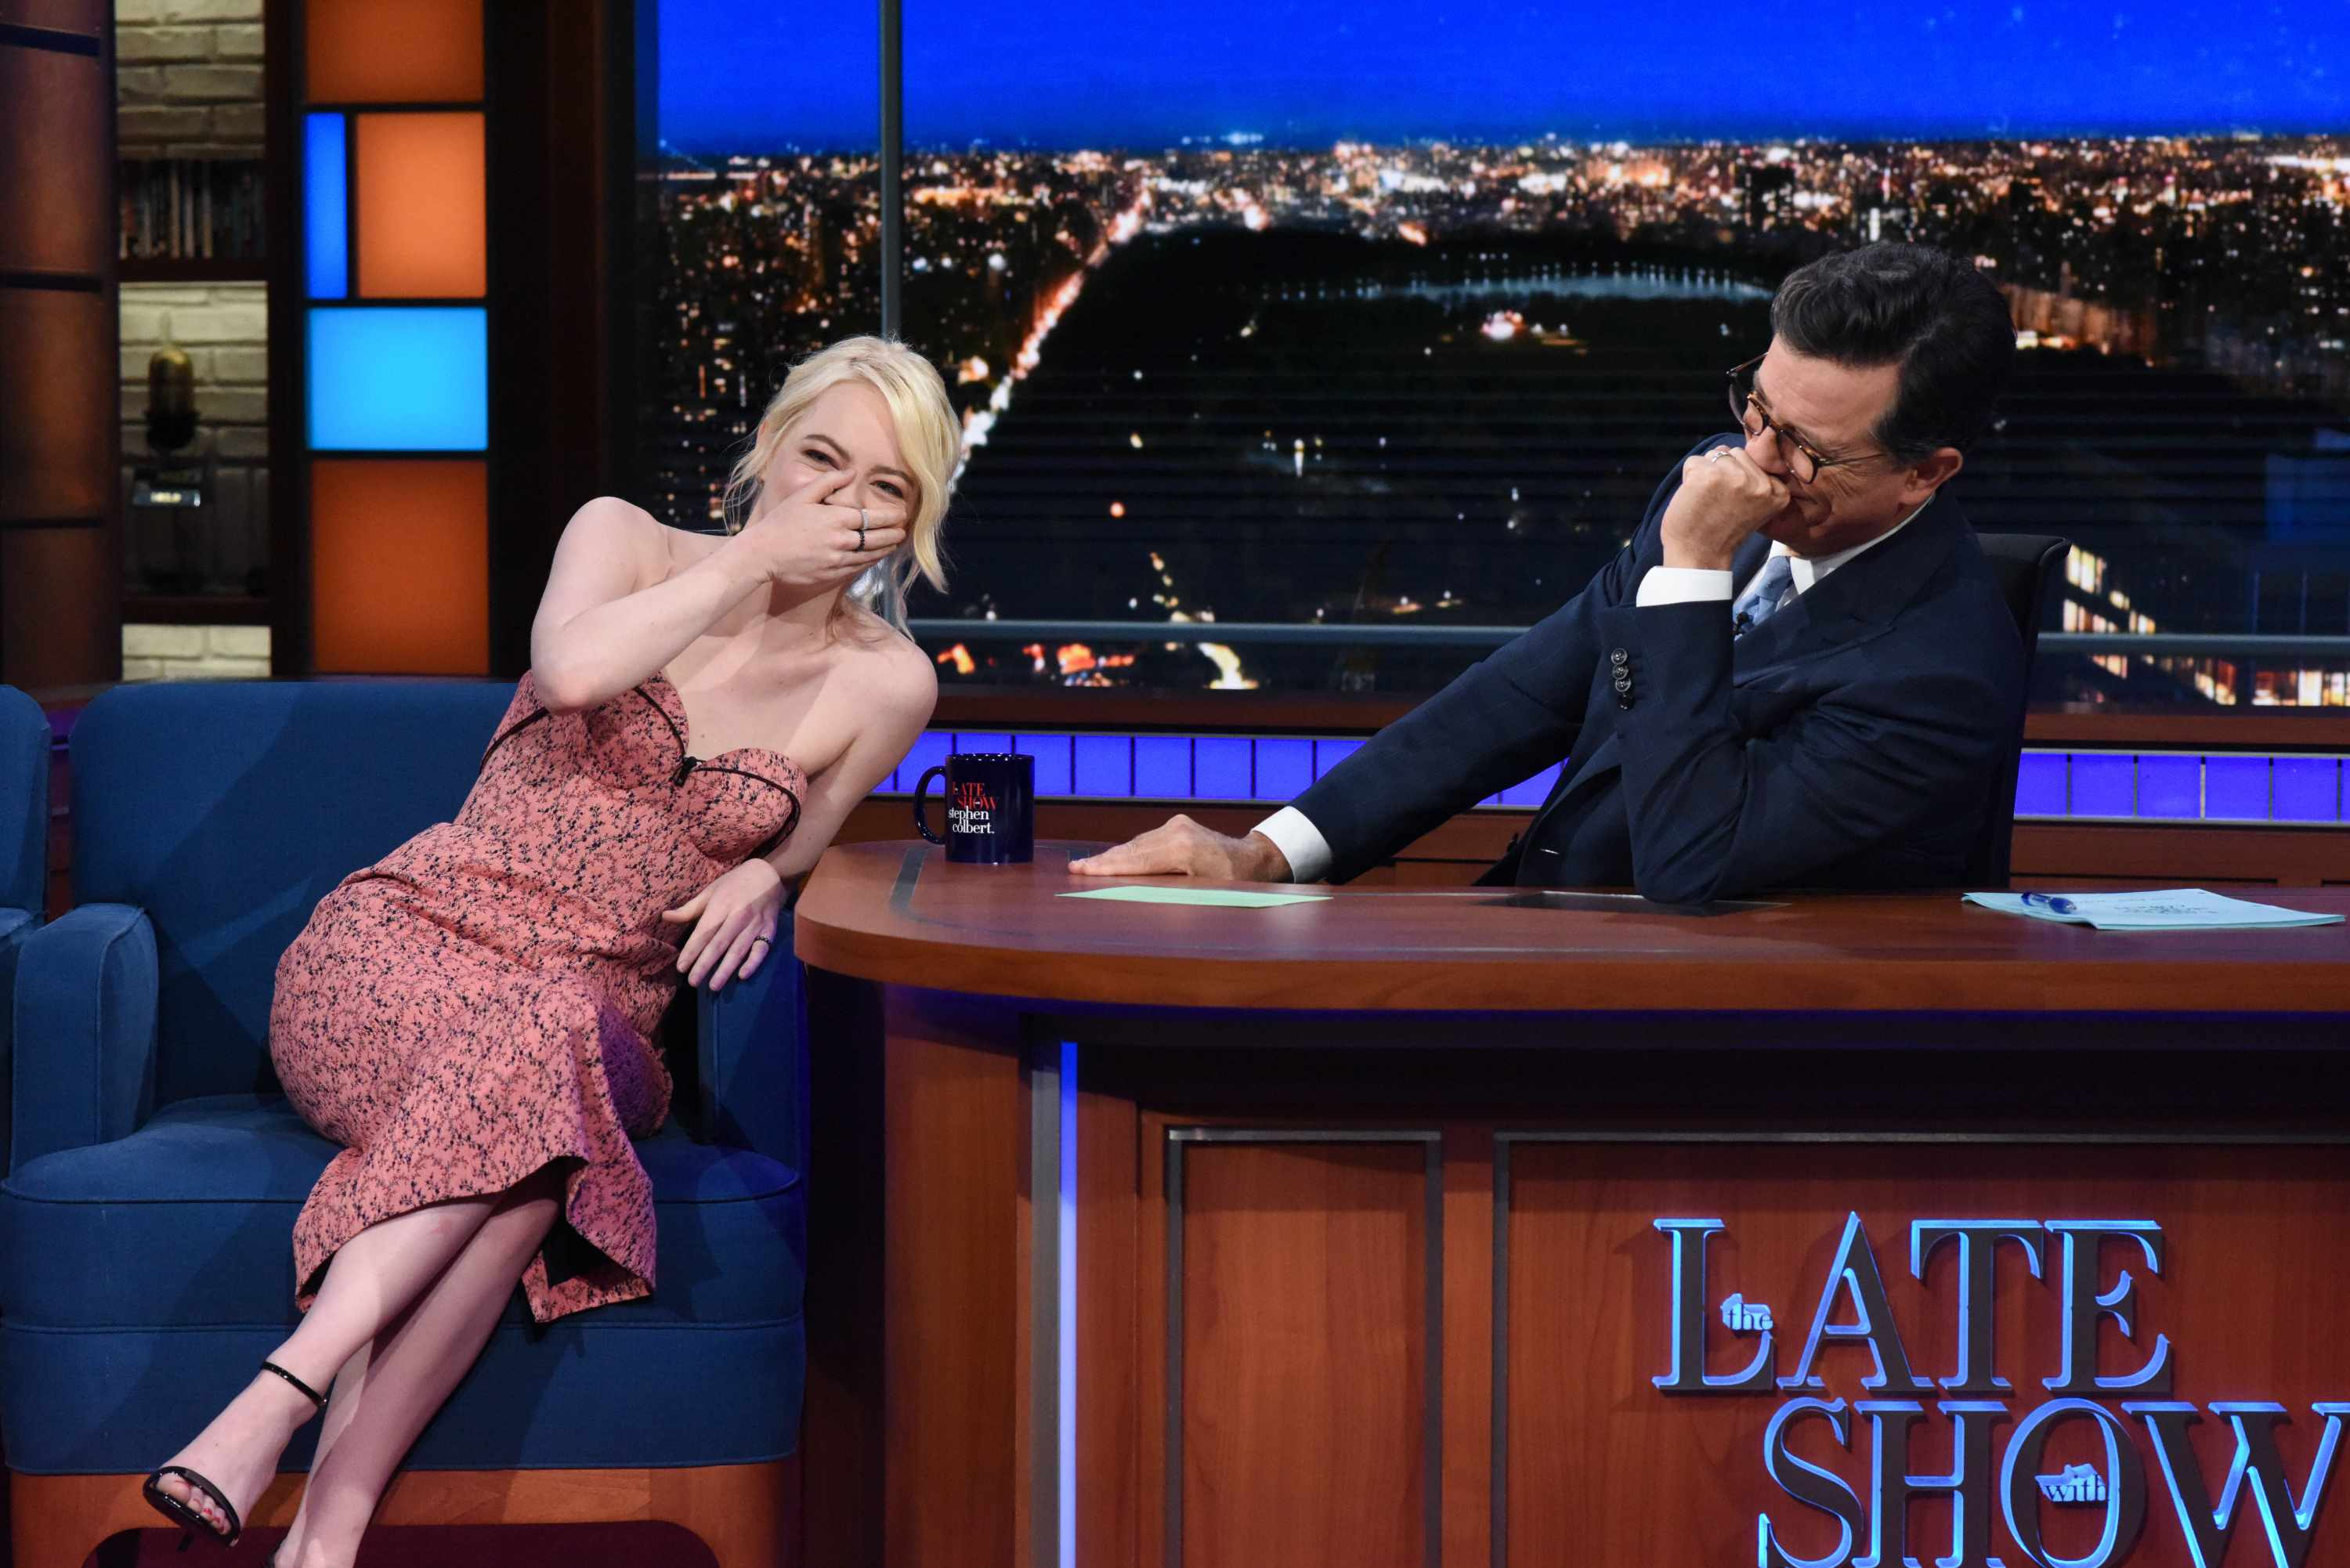 Emma Stone on The Late Show with Stephen Colbert